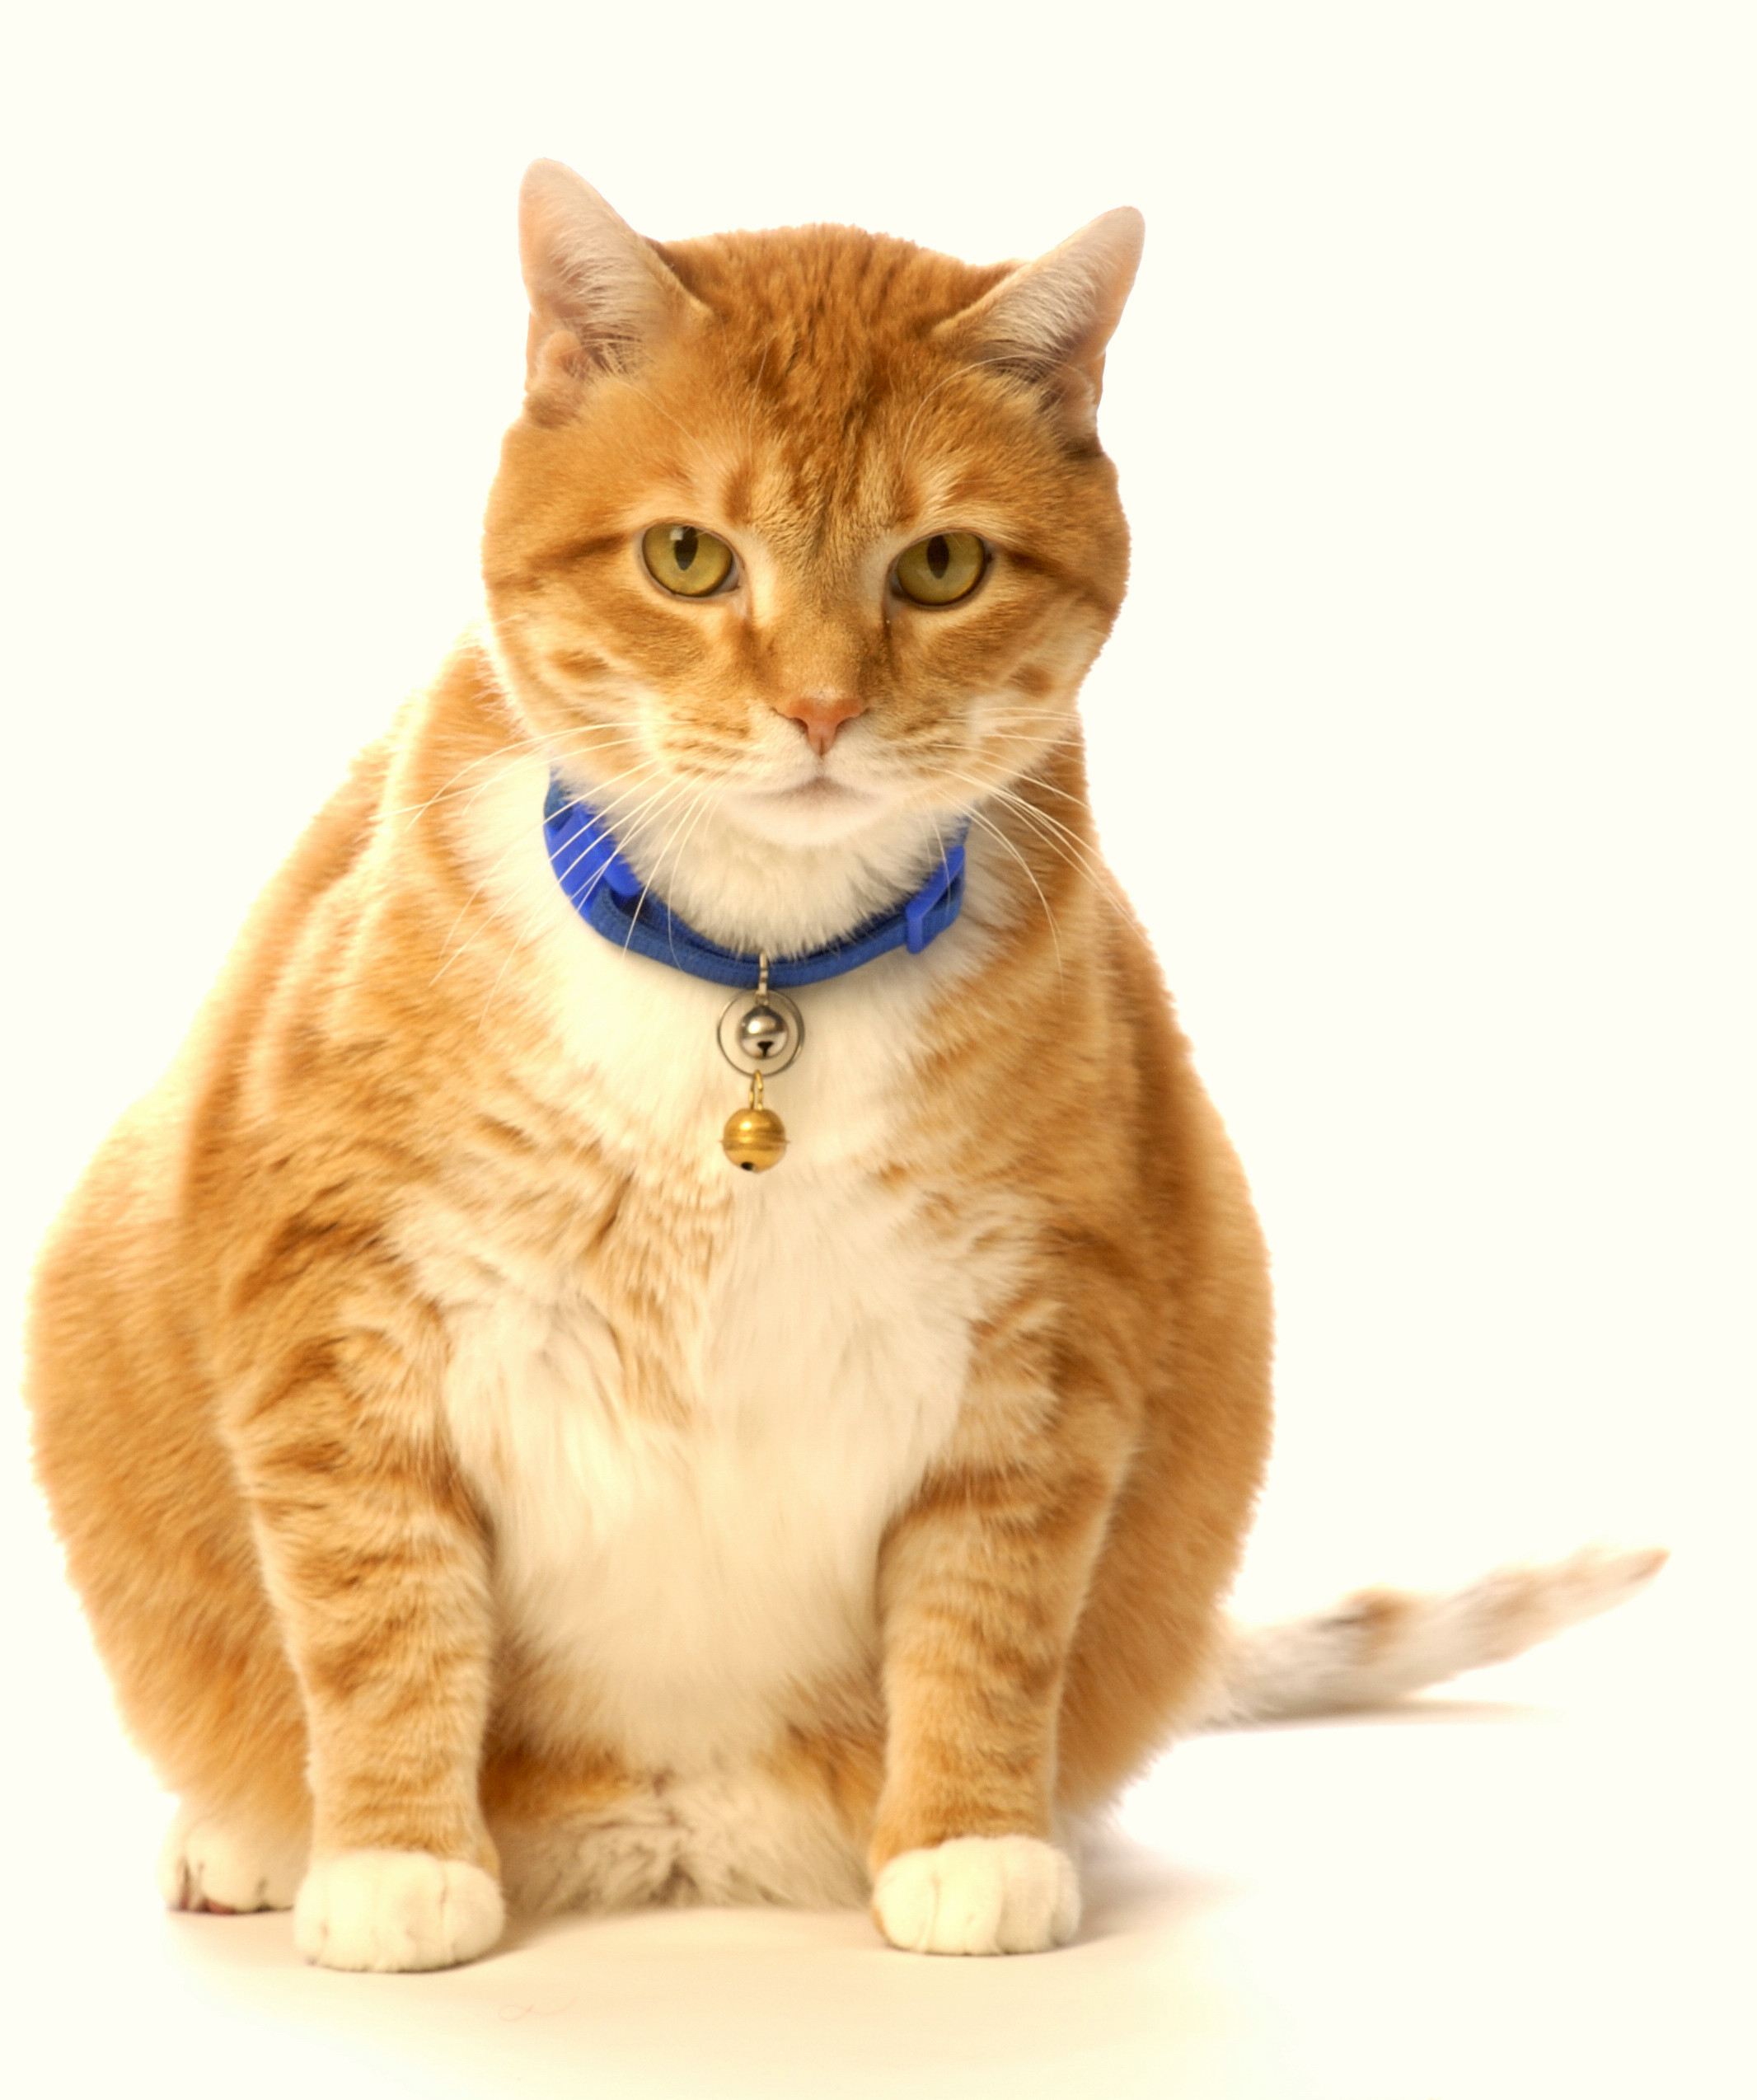 Healthy Snacks For Cats  No More Fat Cats The Search for Healthy Cat Treats